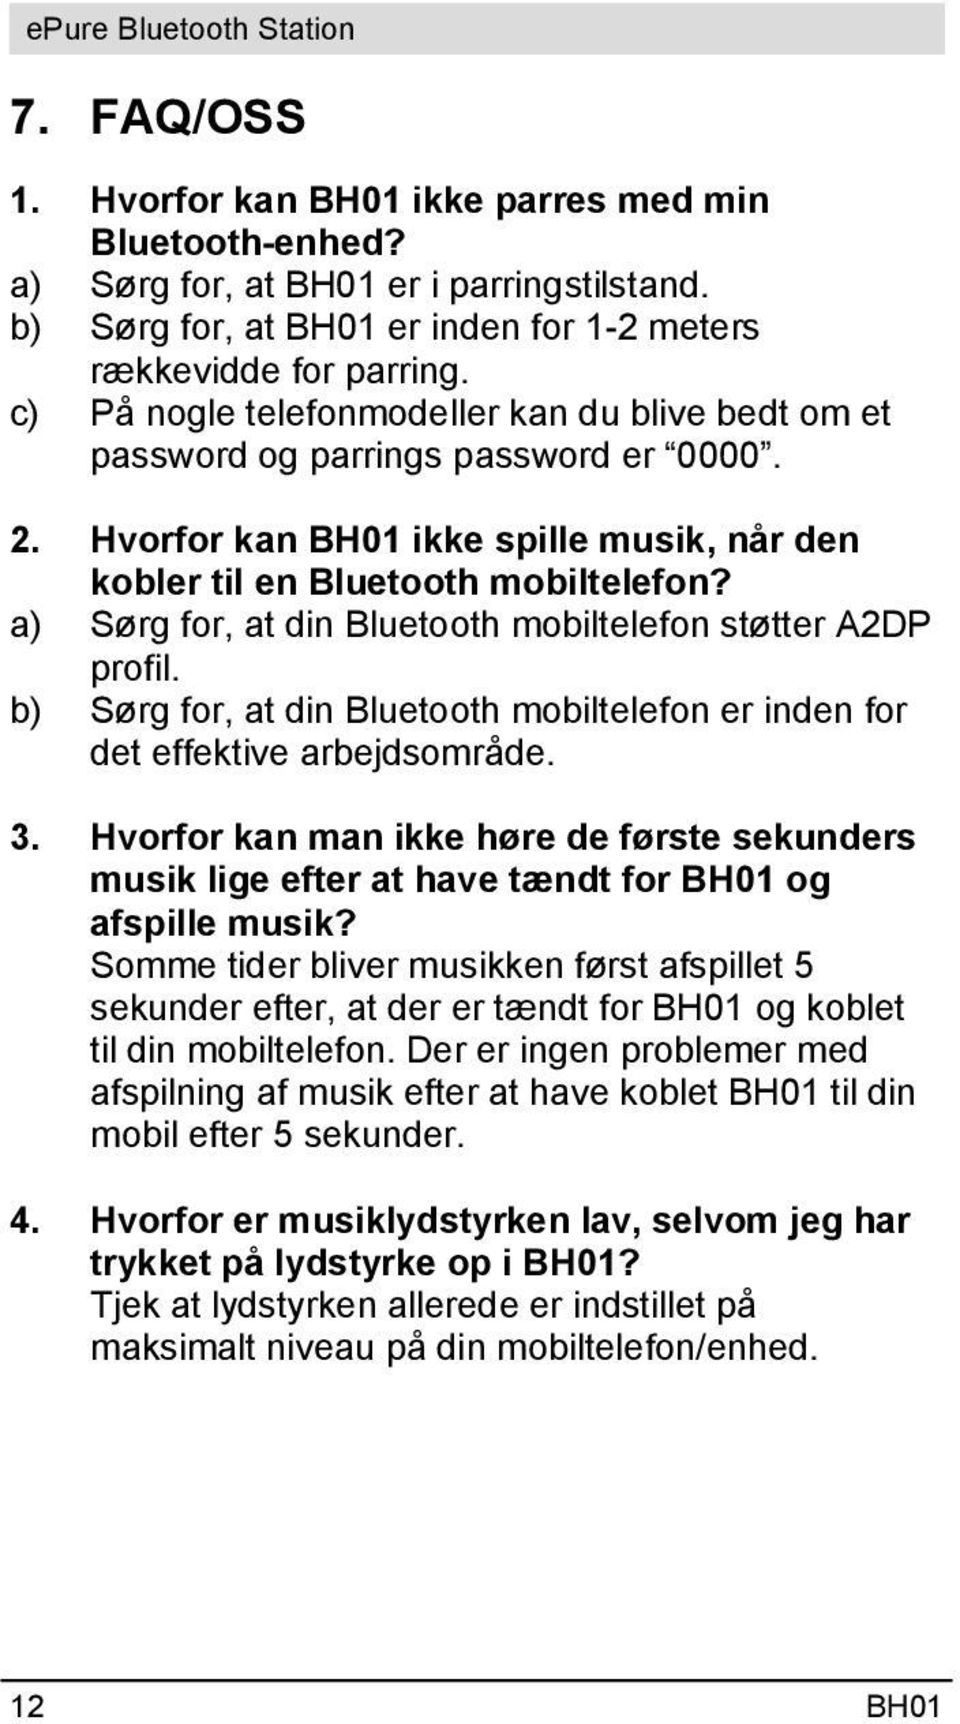 a) Sørg for, at din Bluetooth mobiltelefon støtter A2DP profil. b) Sørg for, at din Bluetooth mobiltelefon er inden for det effektive arbejdsområde. 3.